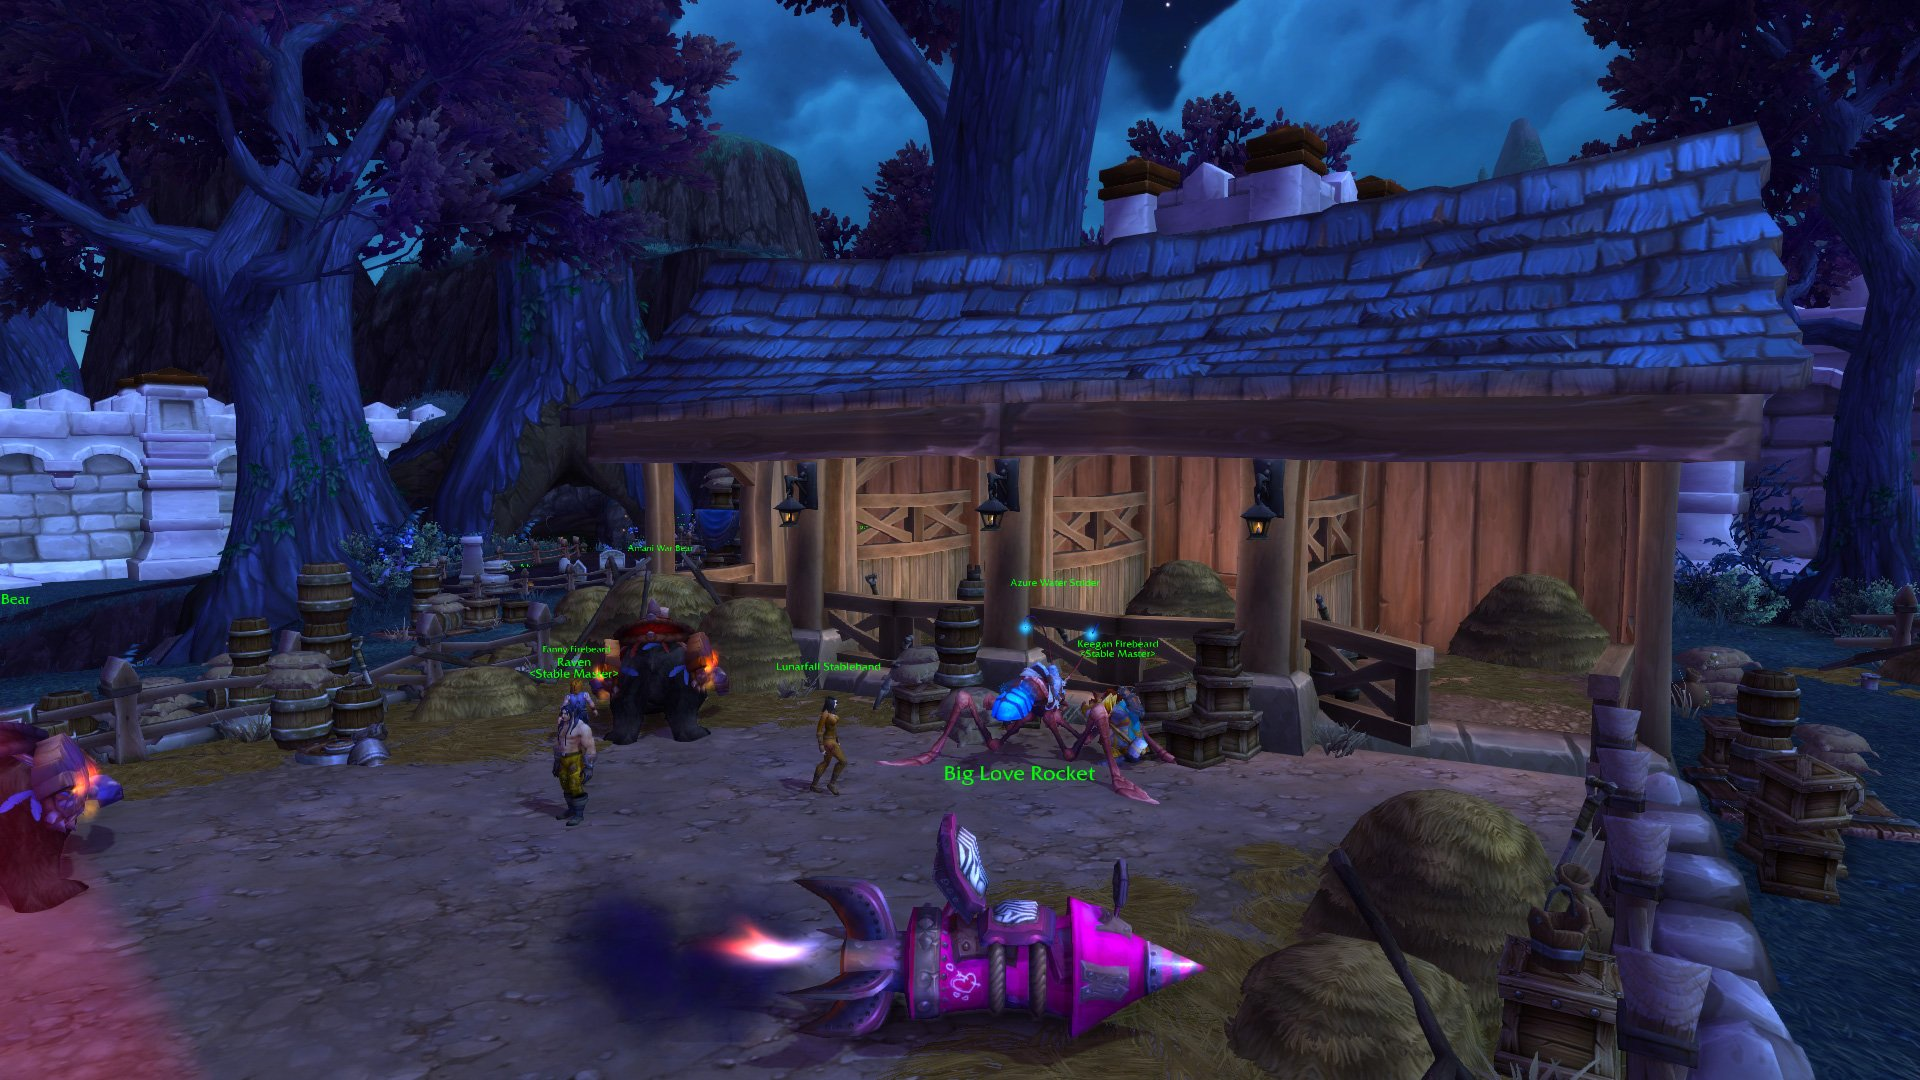 Stormwind repairs stables blazing wings updated garrison guides level 2 horde screenshots malvernweather Images